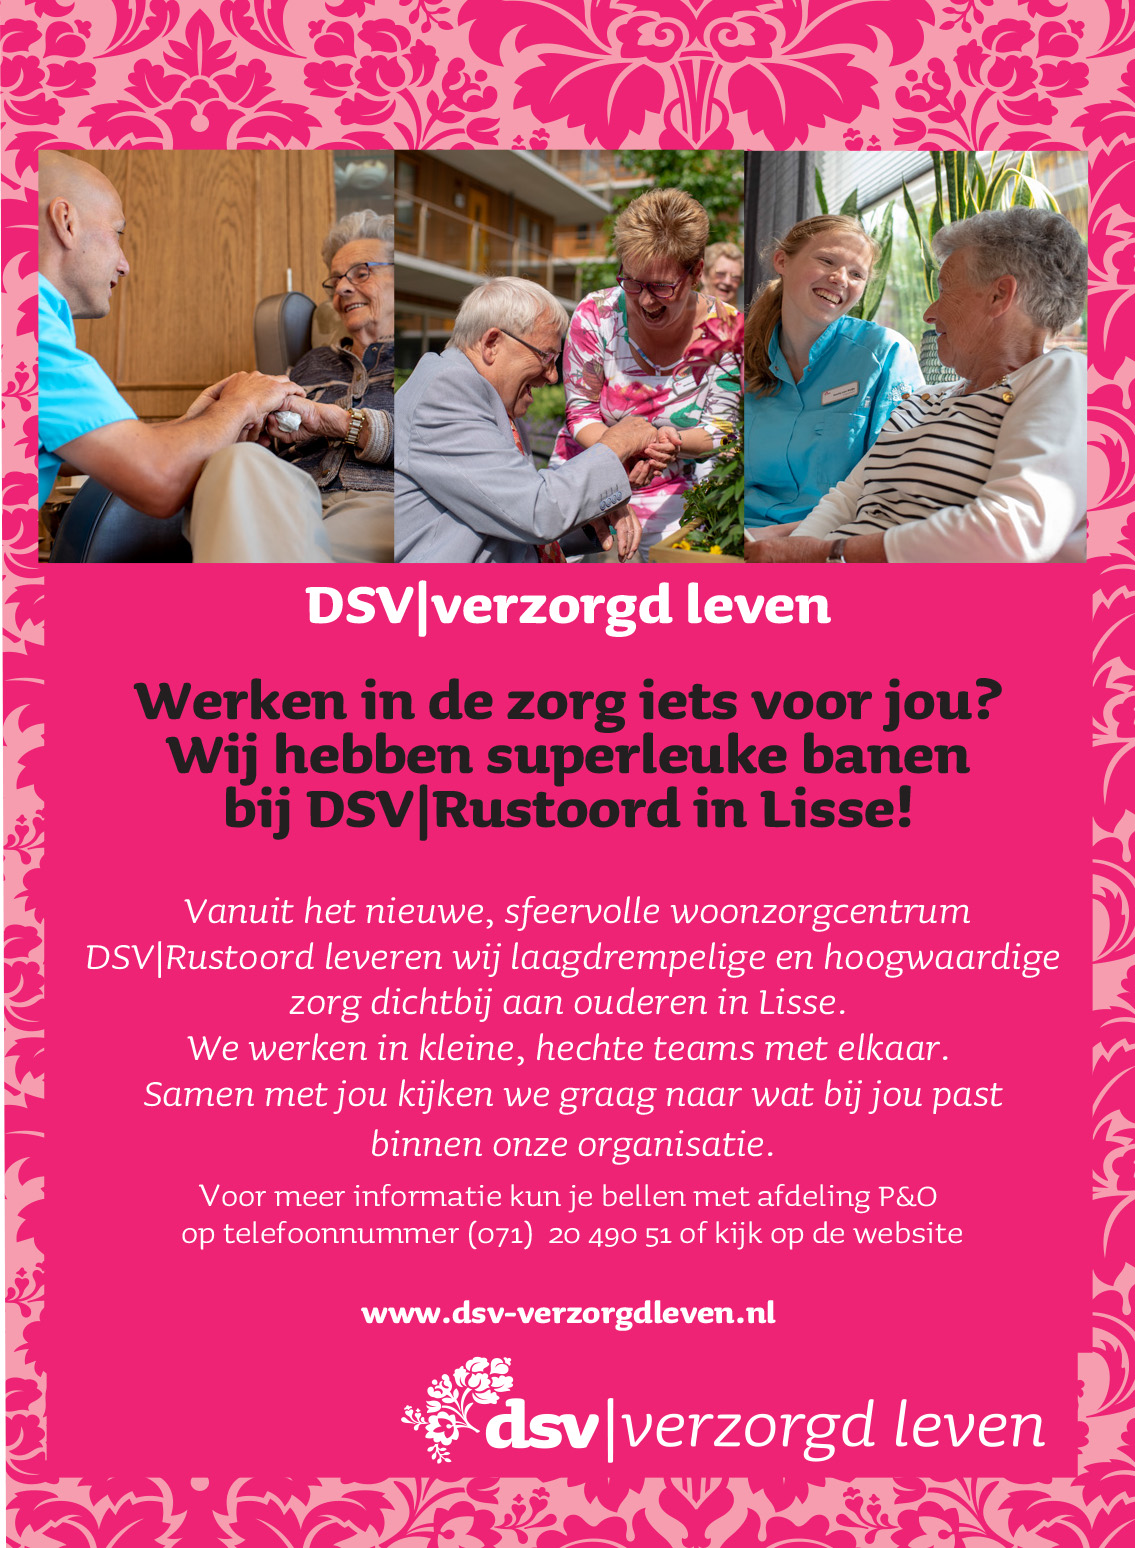 dsv advertentie 2019